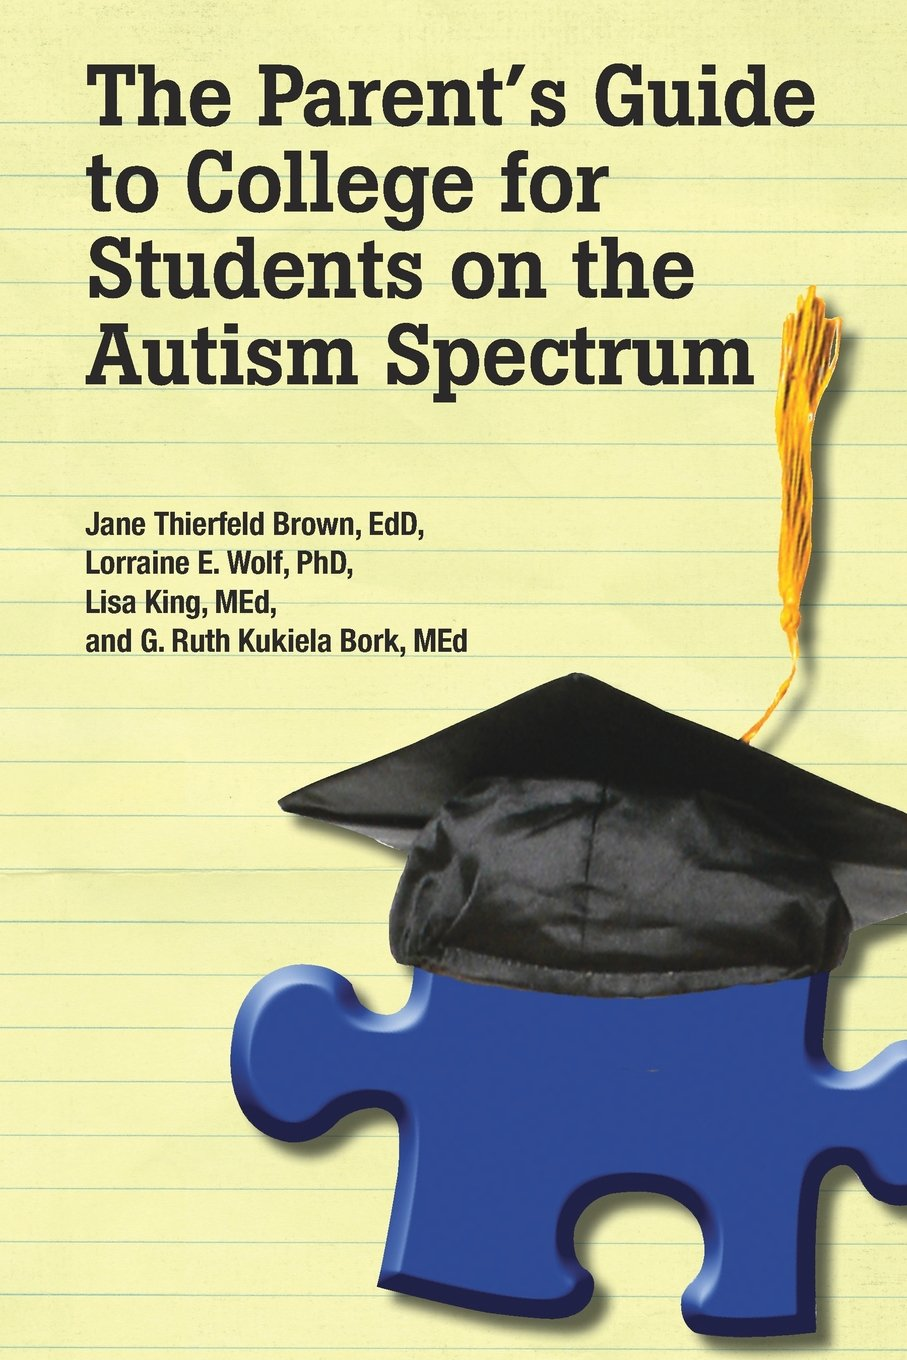 The Parent's Guide To College For Students On The Autism Spectrum: Jane  Thierfeld Brown, Edd, Lorraine Wolf, Phd, Lisa King Med, G Ruth Bork,